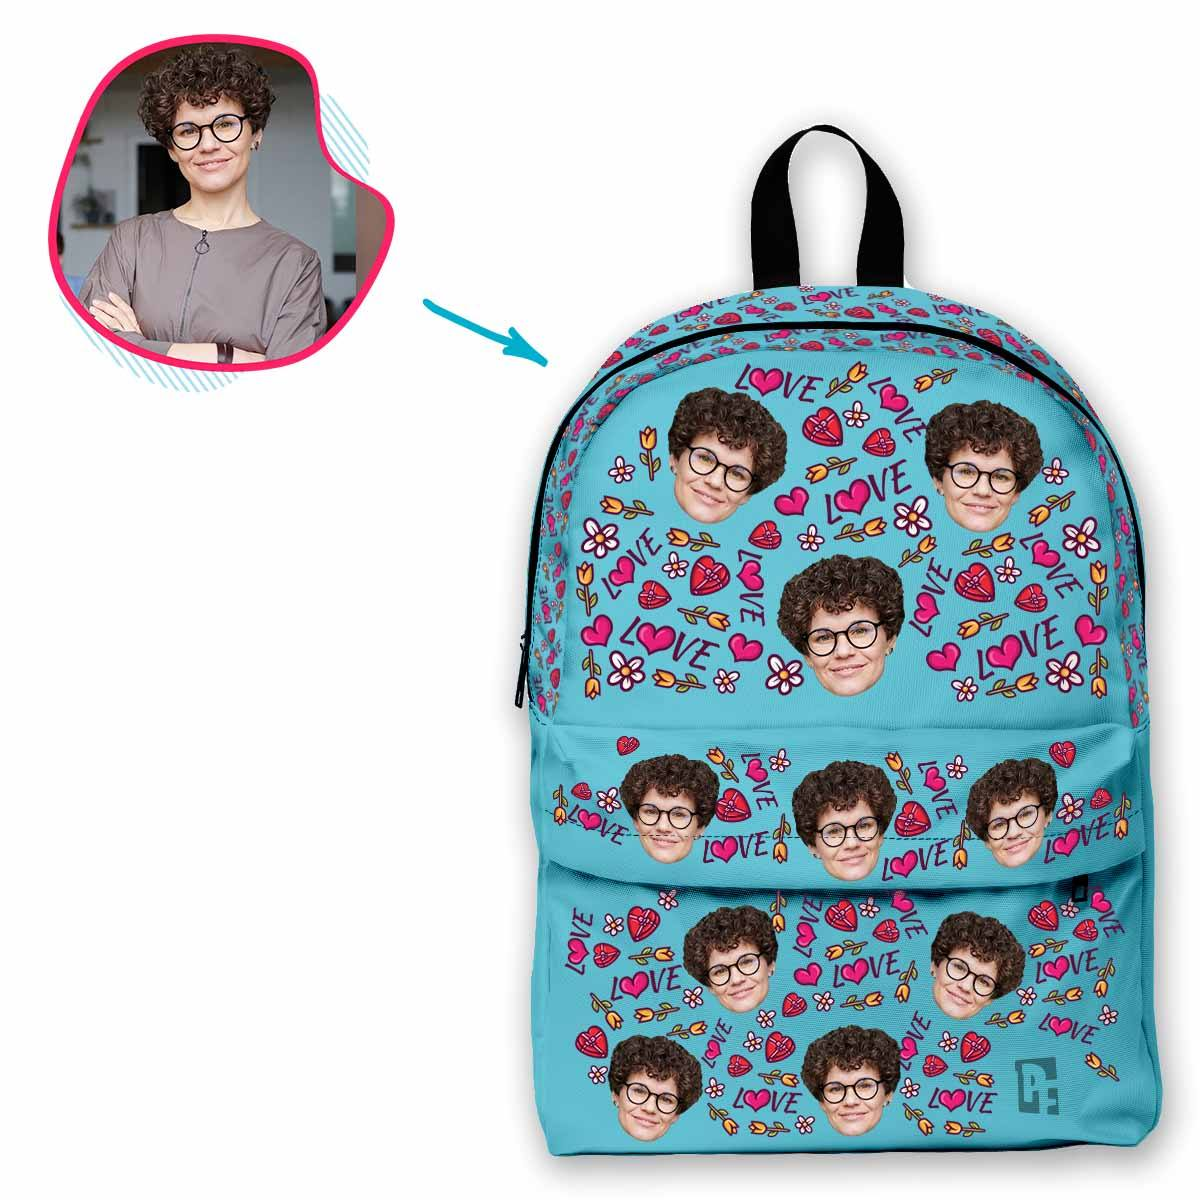 blue Hearts and Flowers classic backpack personalized with photo of face printed on it